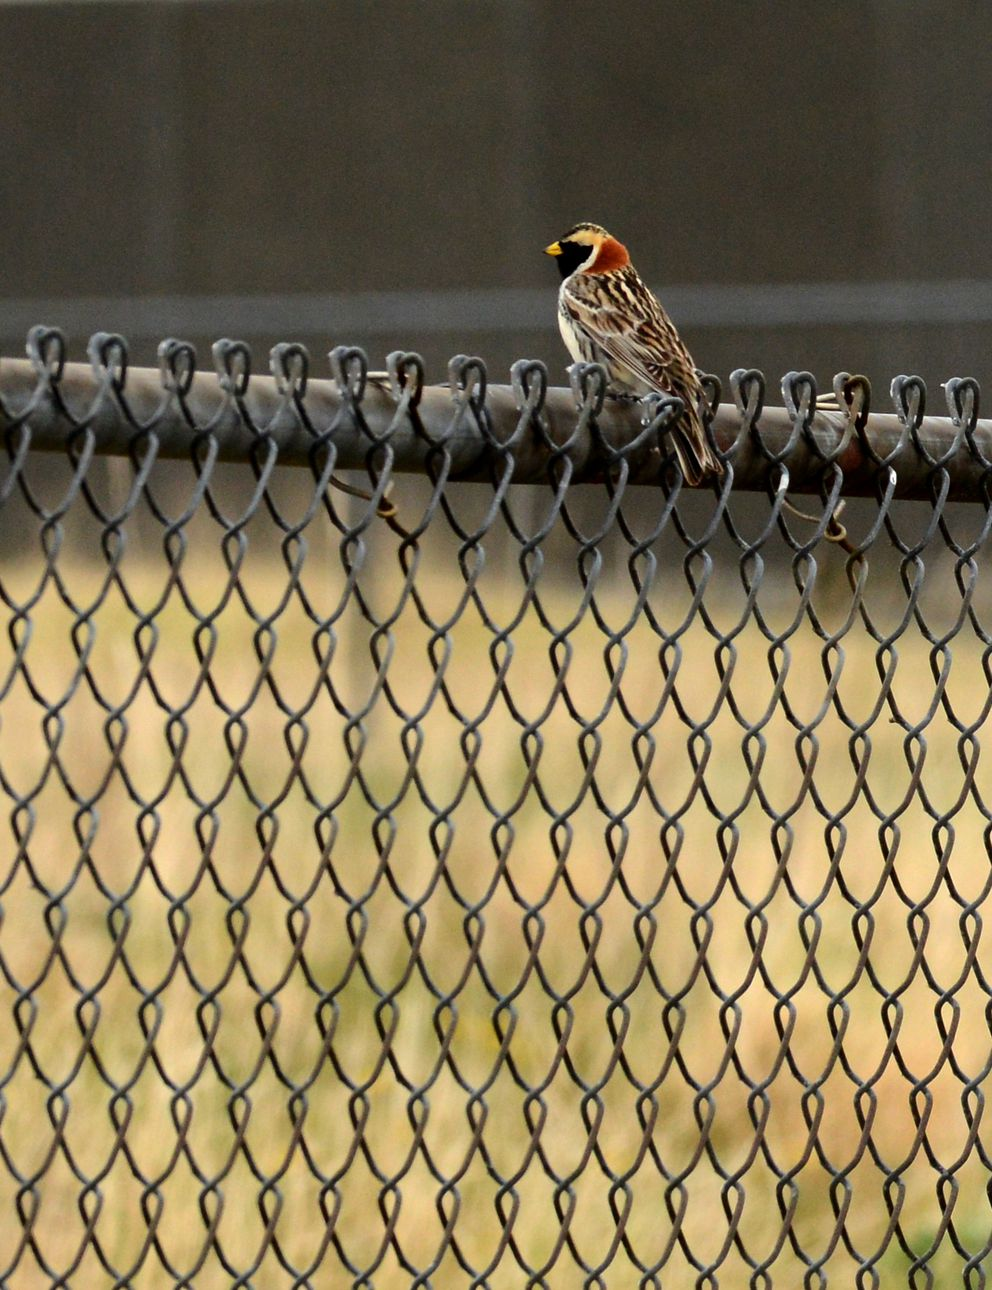 A Lapland longspur sits on a fence in the housing area of the former military base on Adak Island on June 5, 2015. (Bob Hallinen / Alaska Dispatch News)